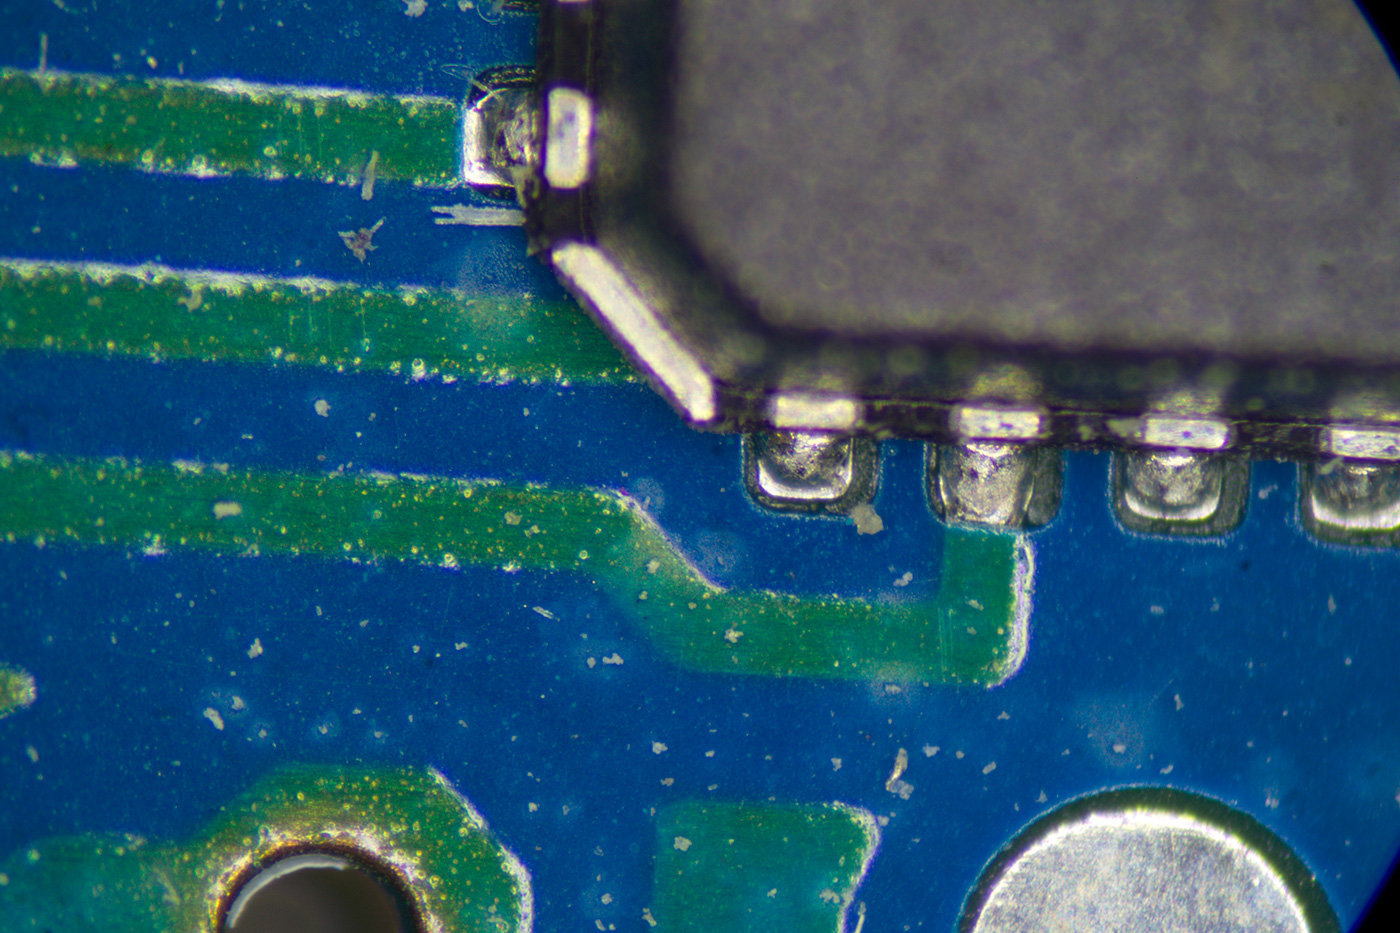 PCB and components at maximum zoom.